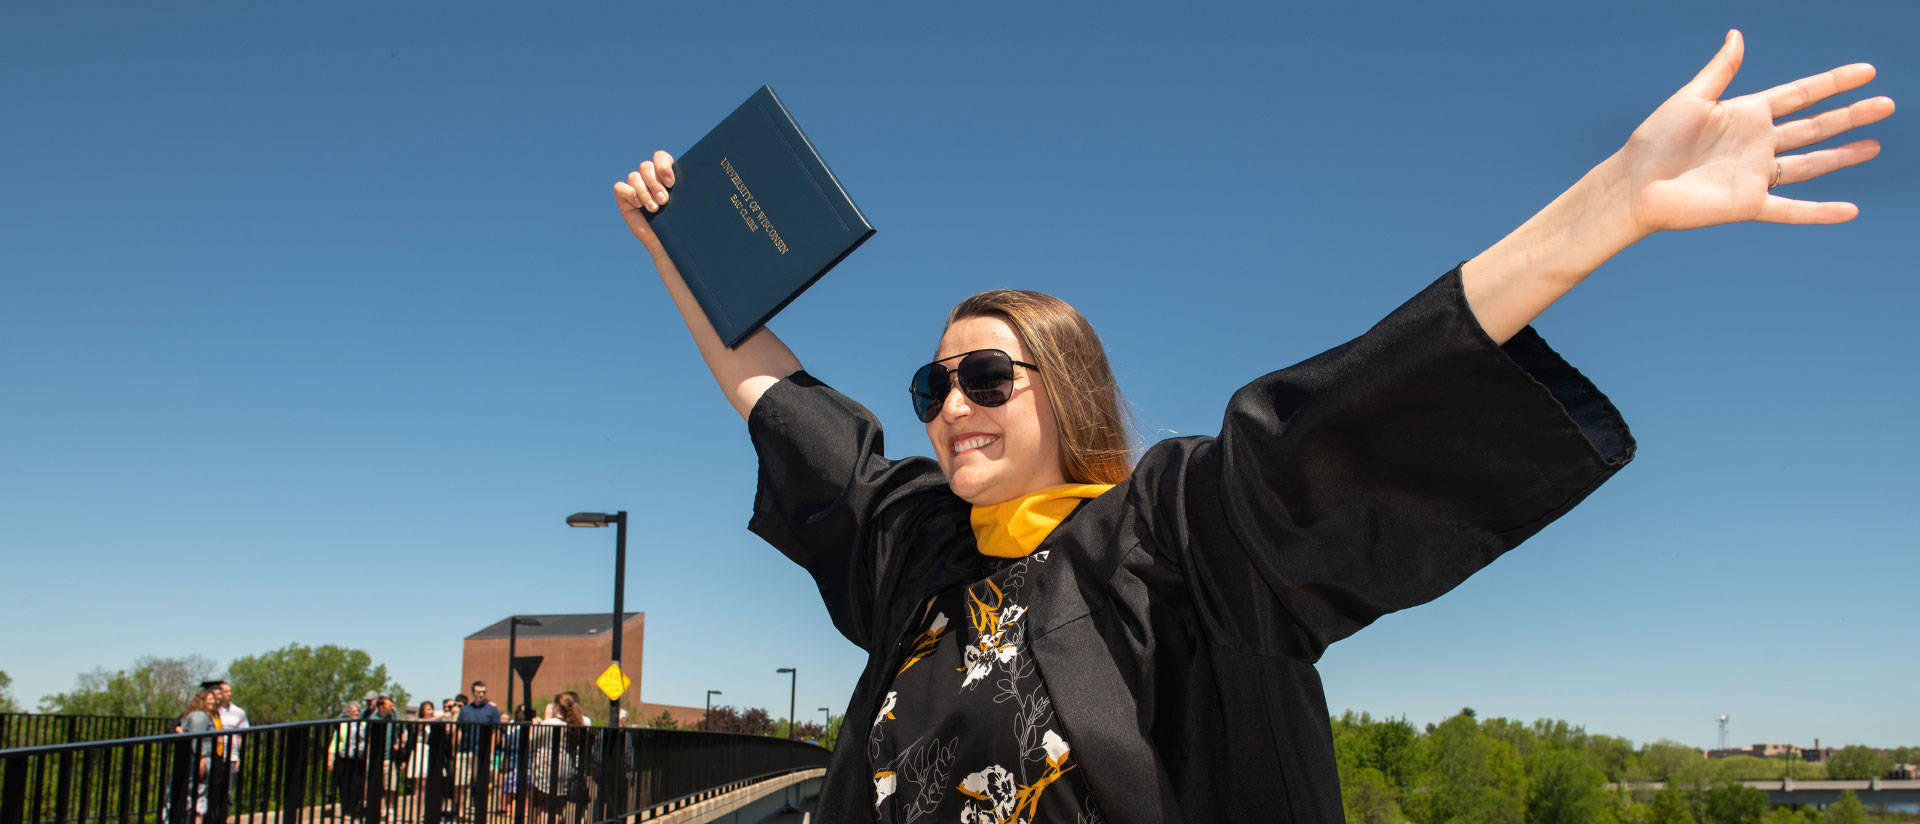 Photo of undergraduate outside in sunglasses holding bachelor's degree diploma in the air